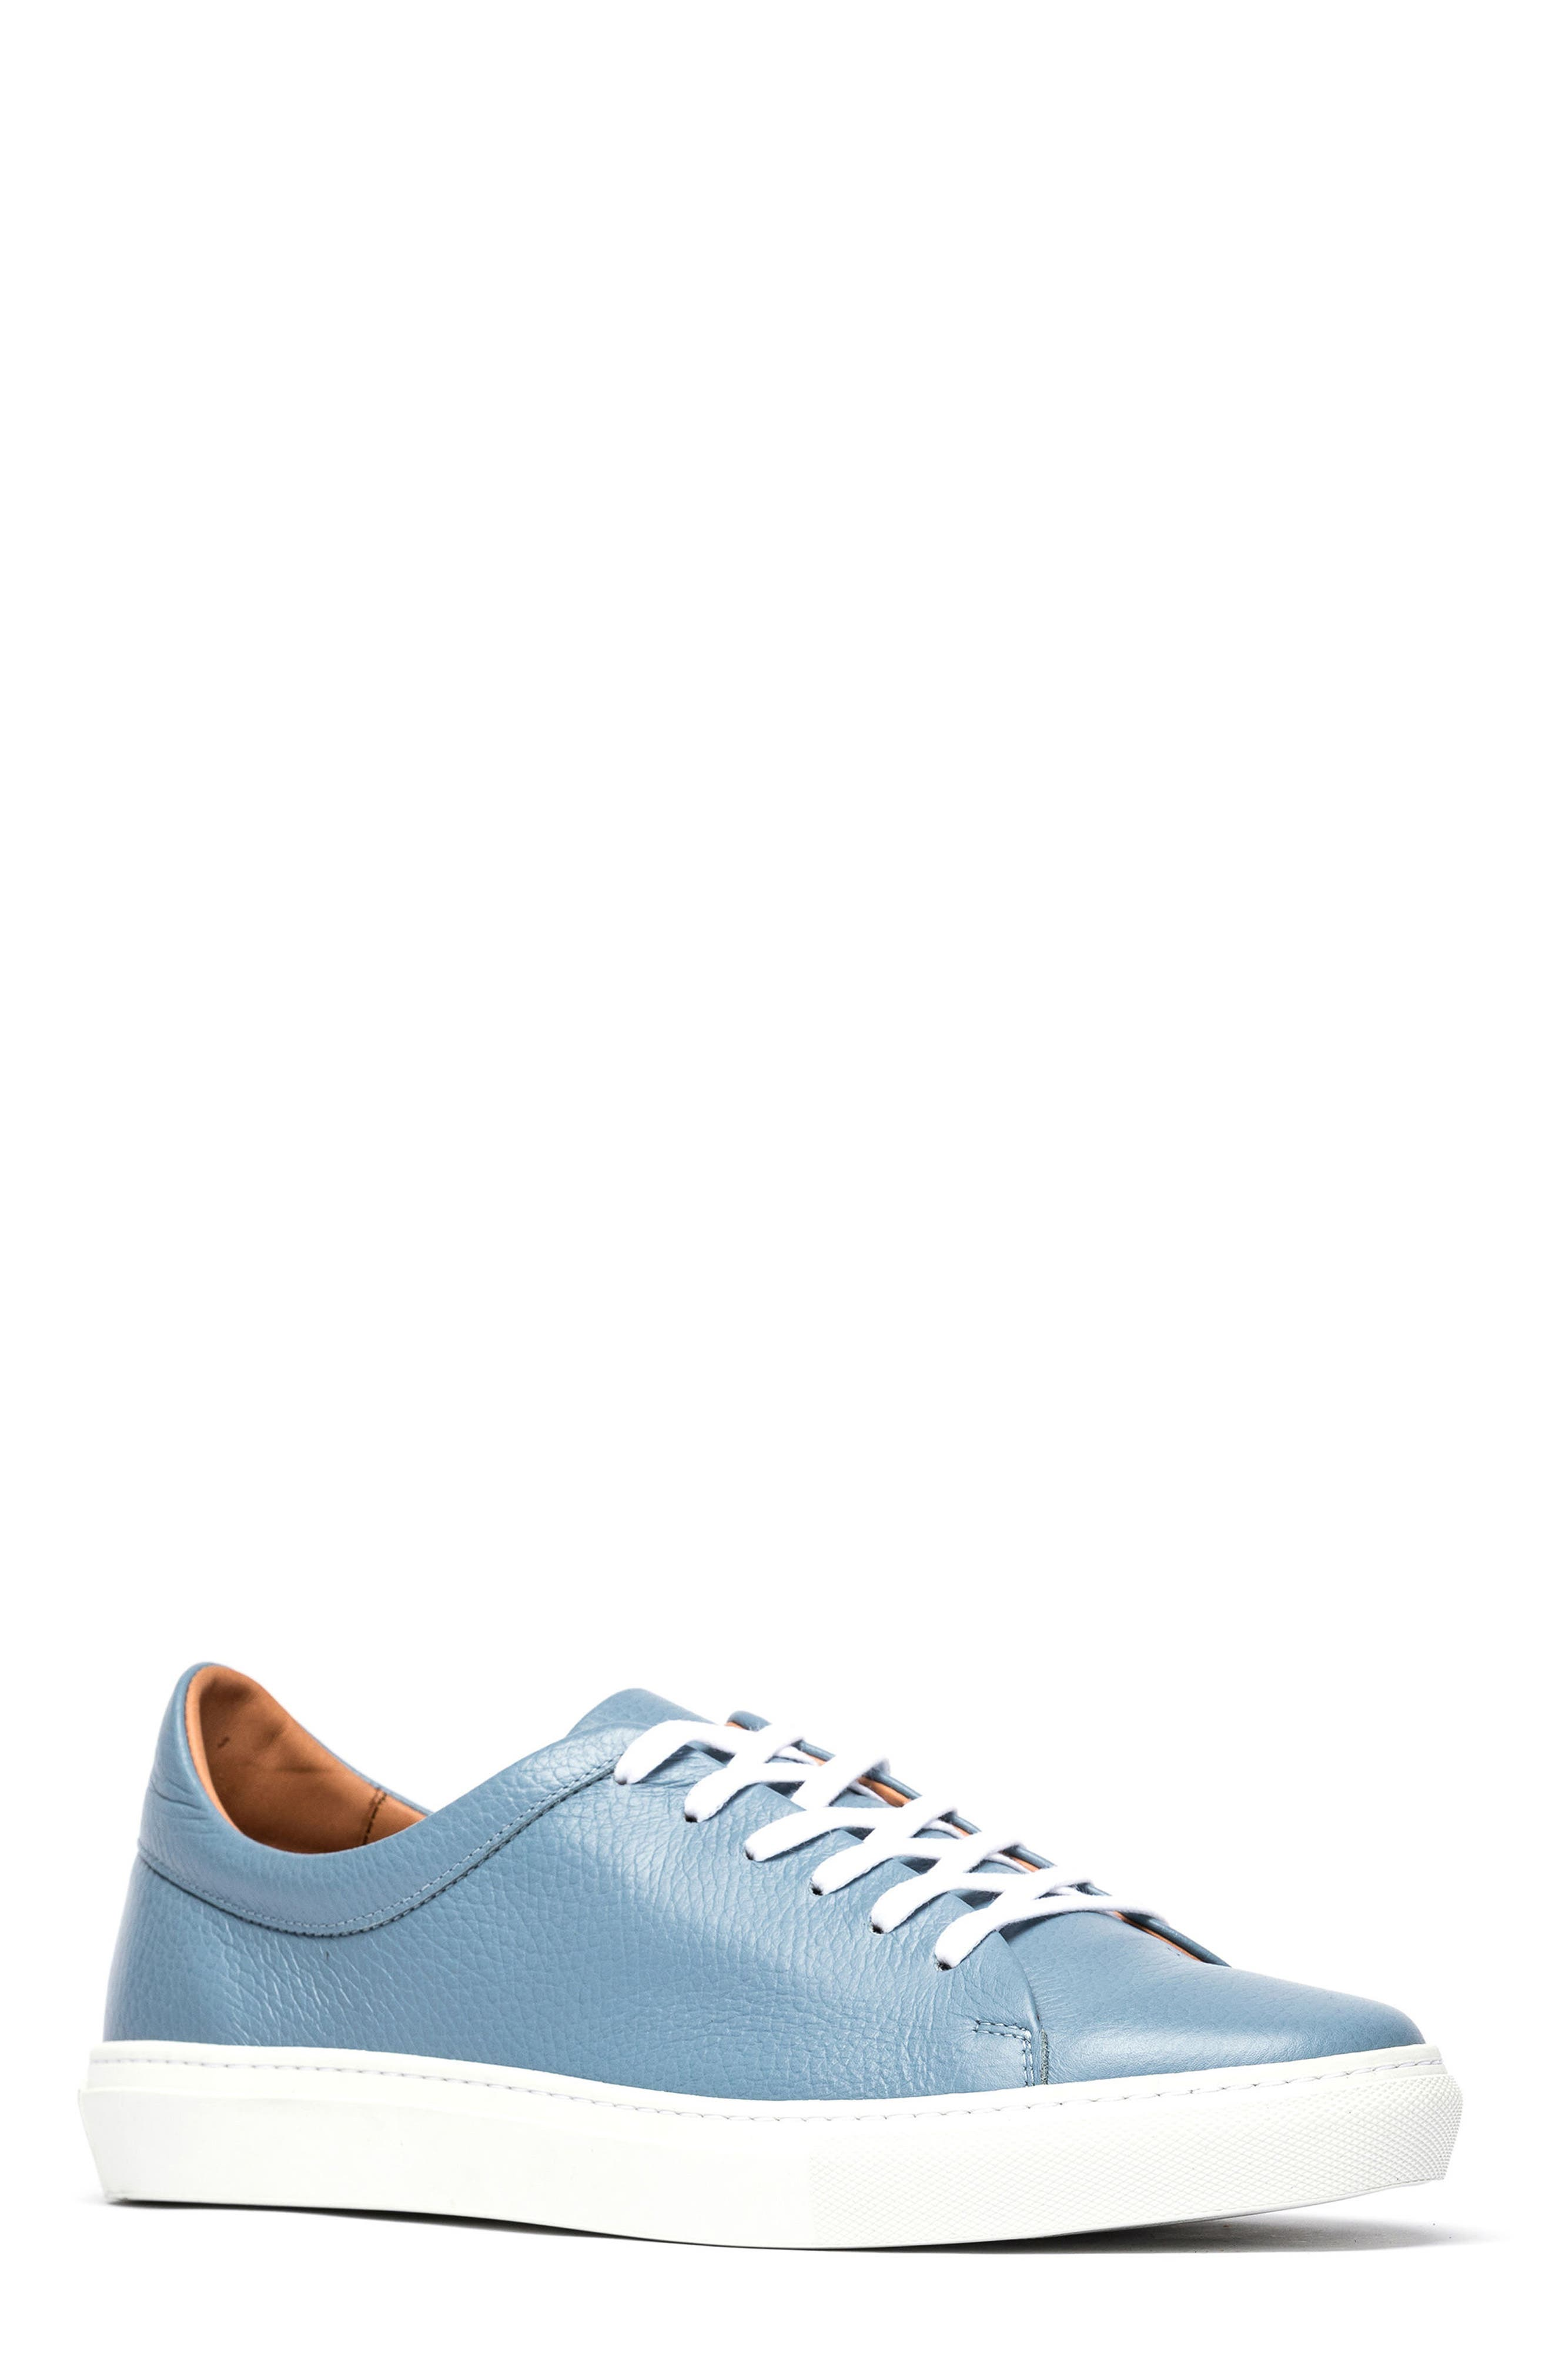 Windemere Sneaker,                         Main,                         color, Sky Blue Leather